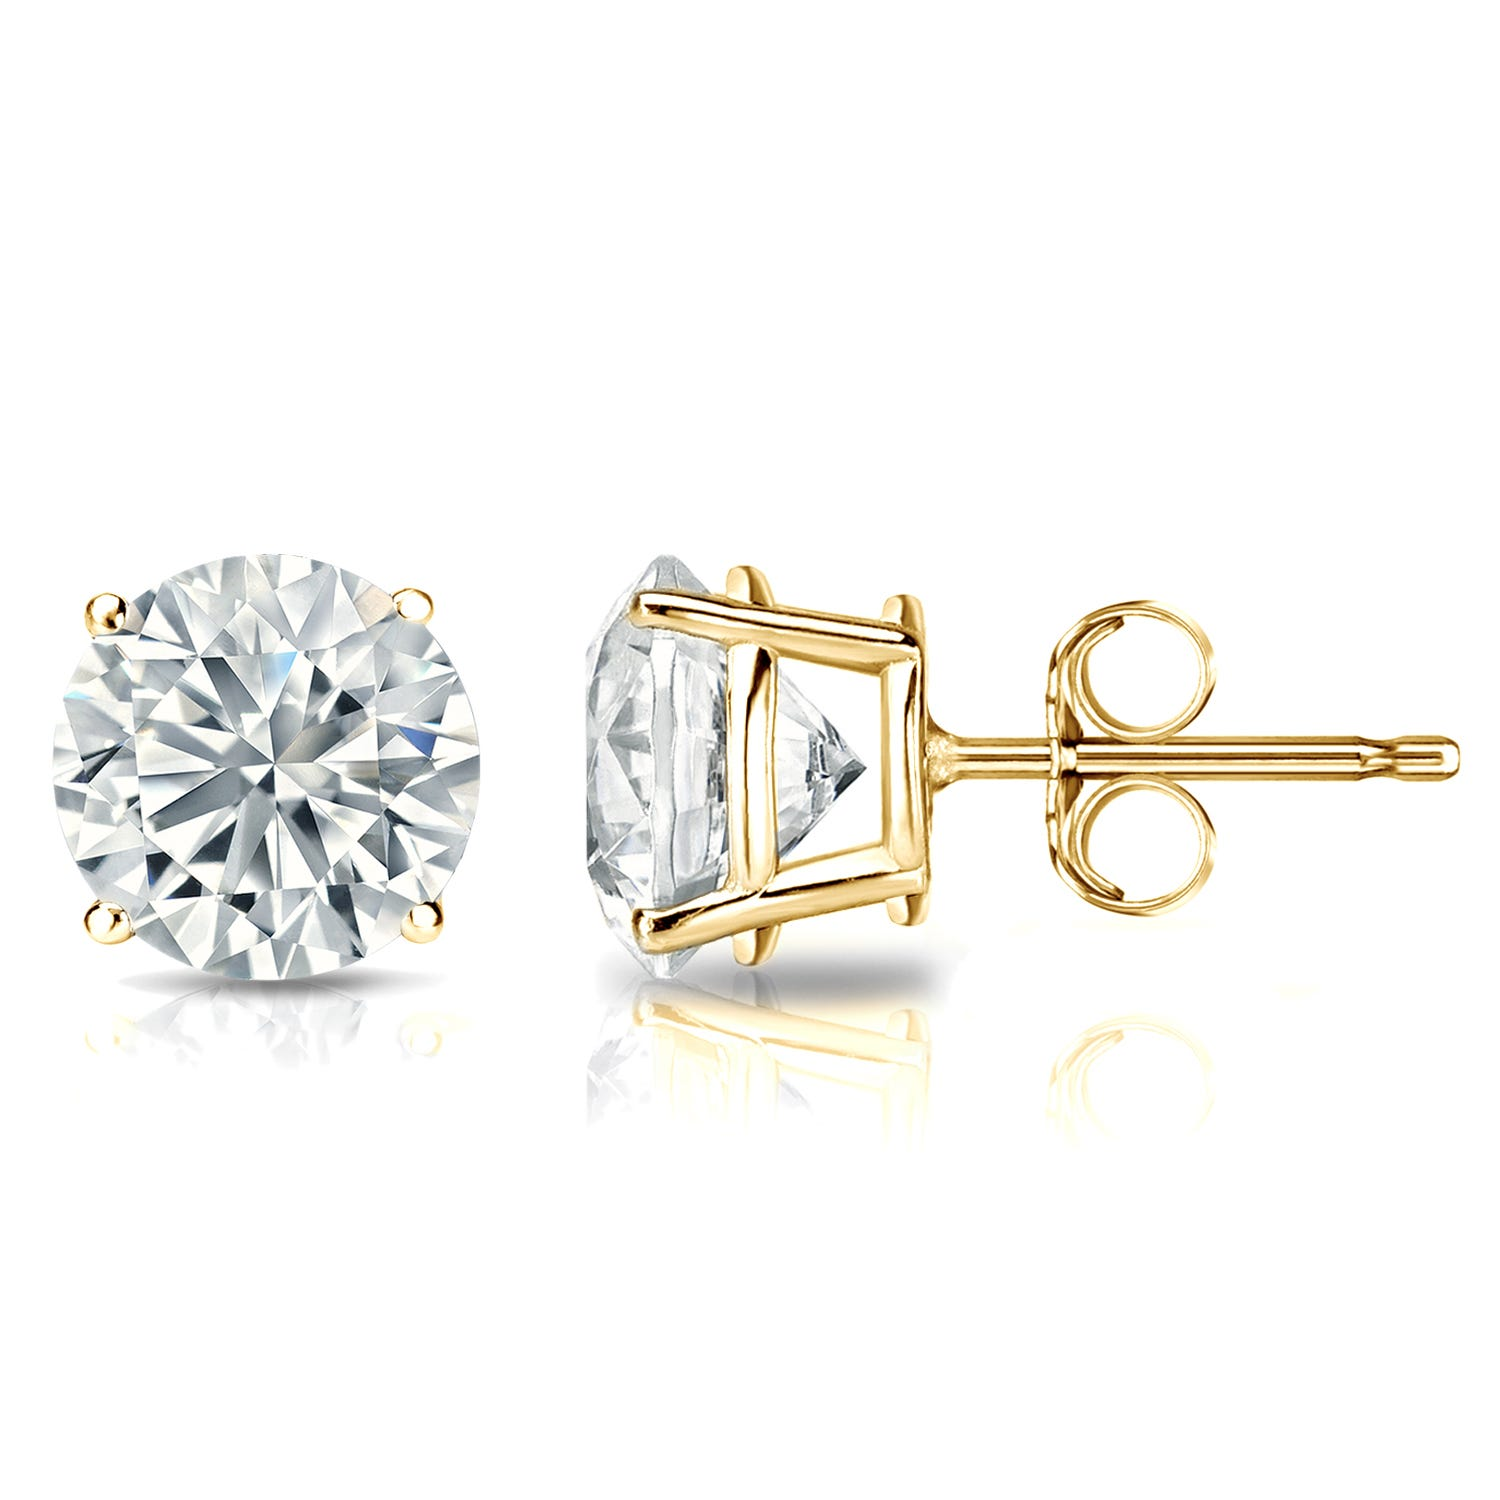 Diamond 2ctw. Round Solitaire Stud Earrings (I-J, I1) 14k Yellow Gold